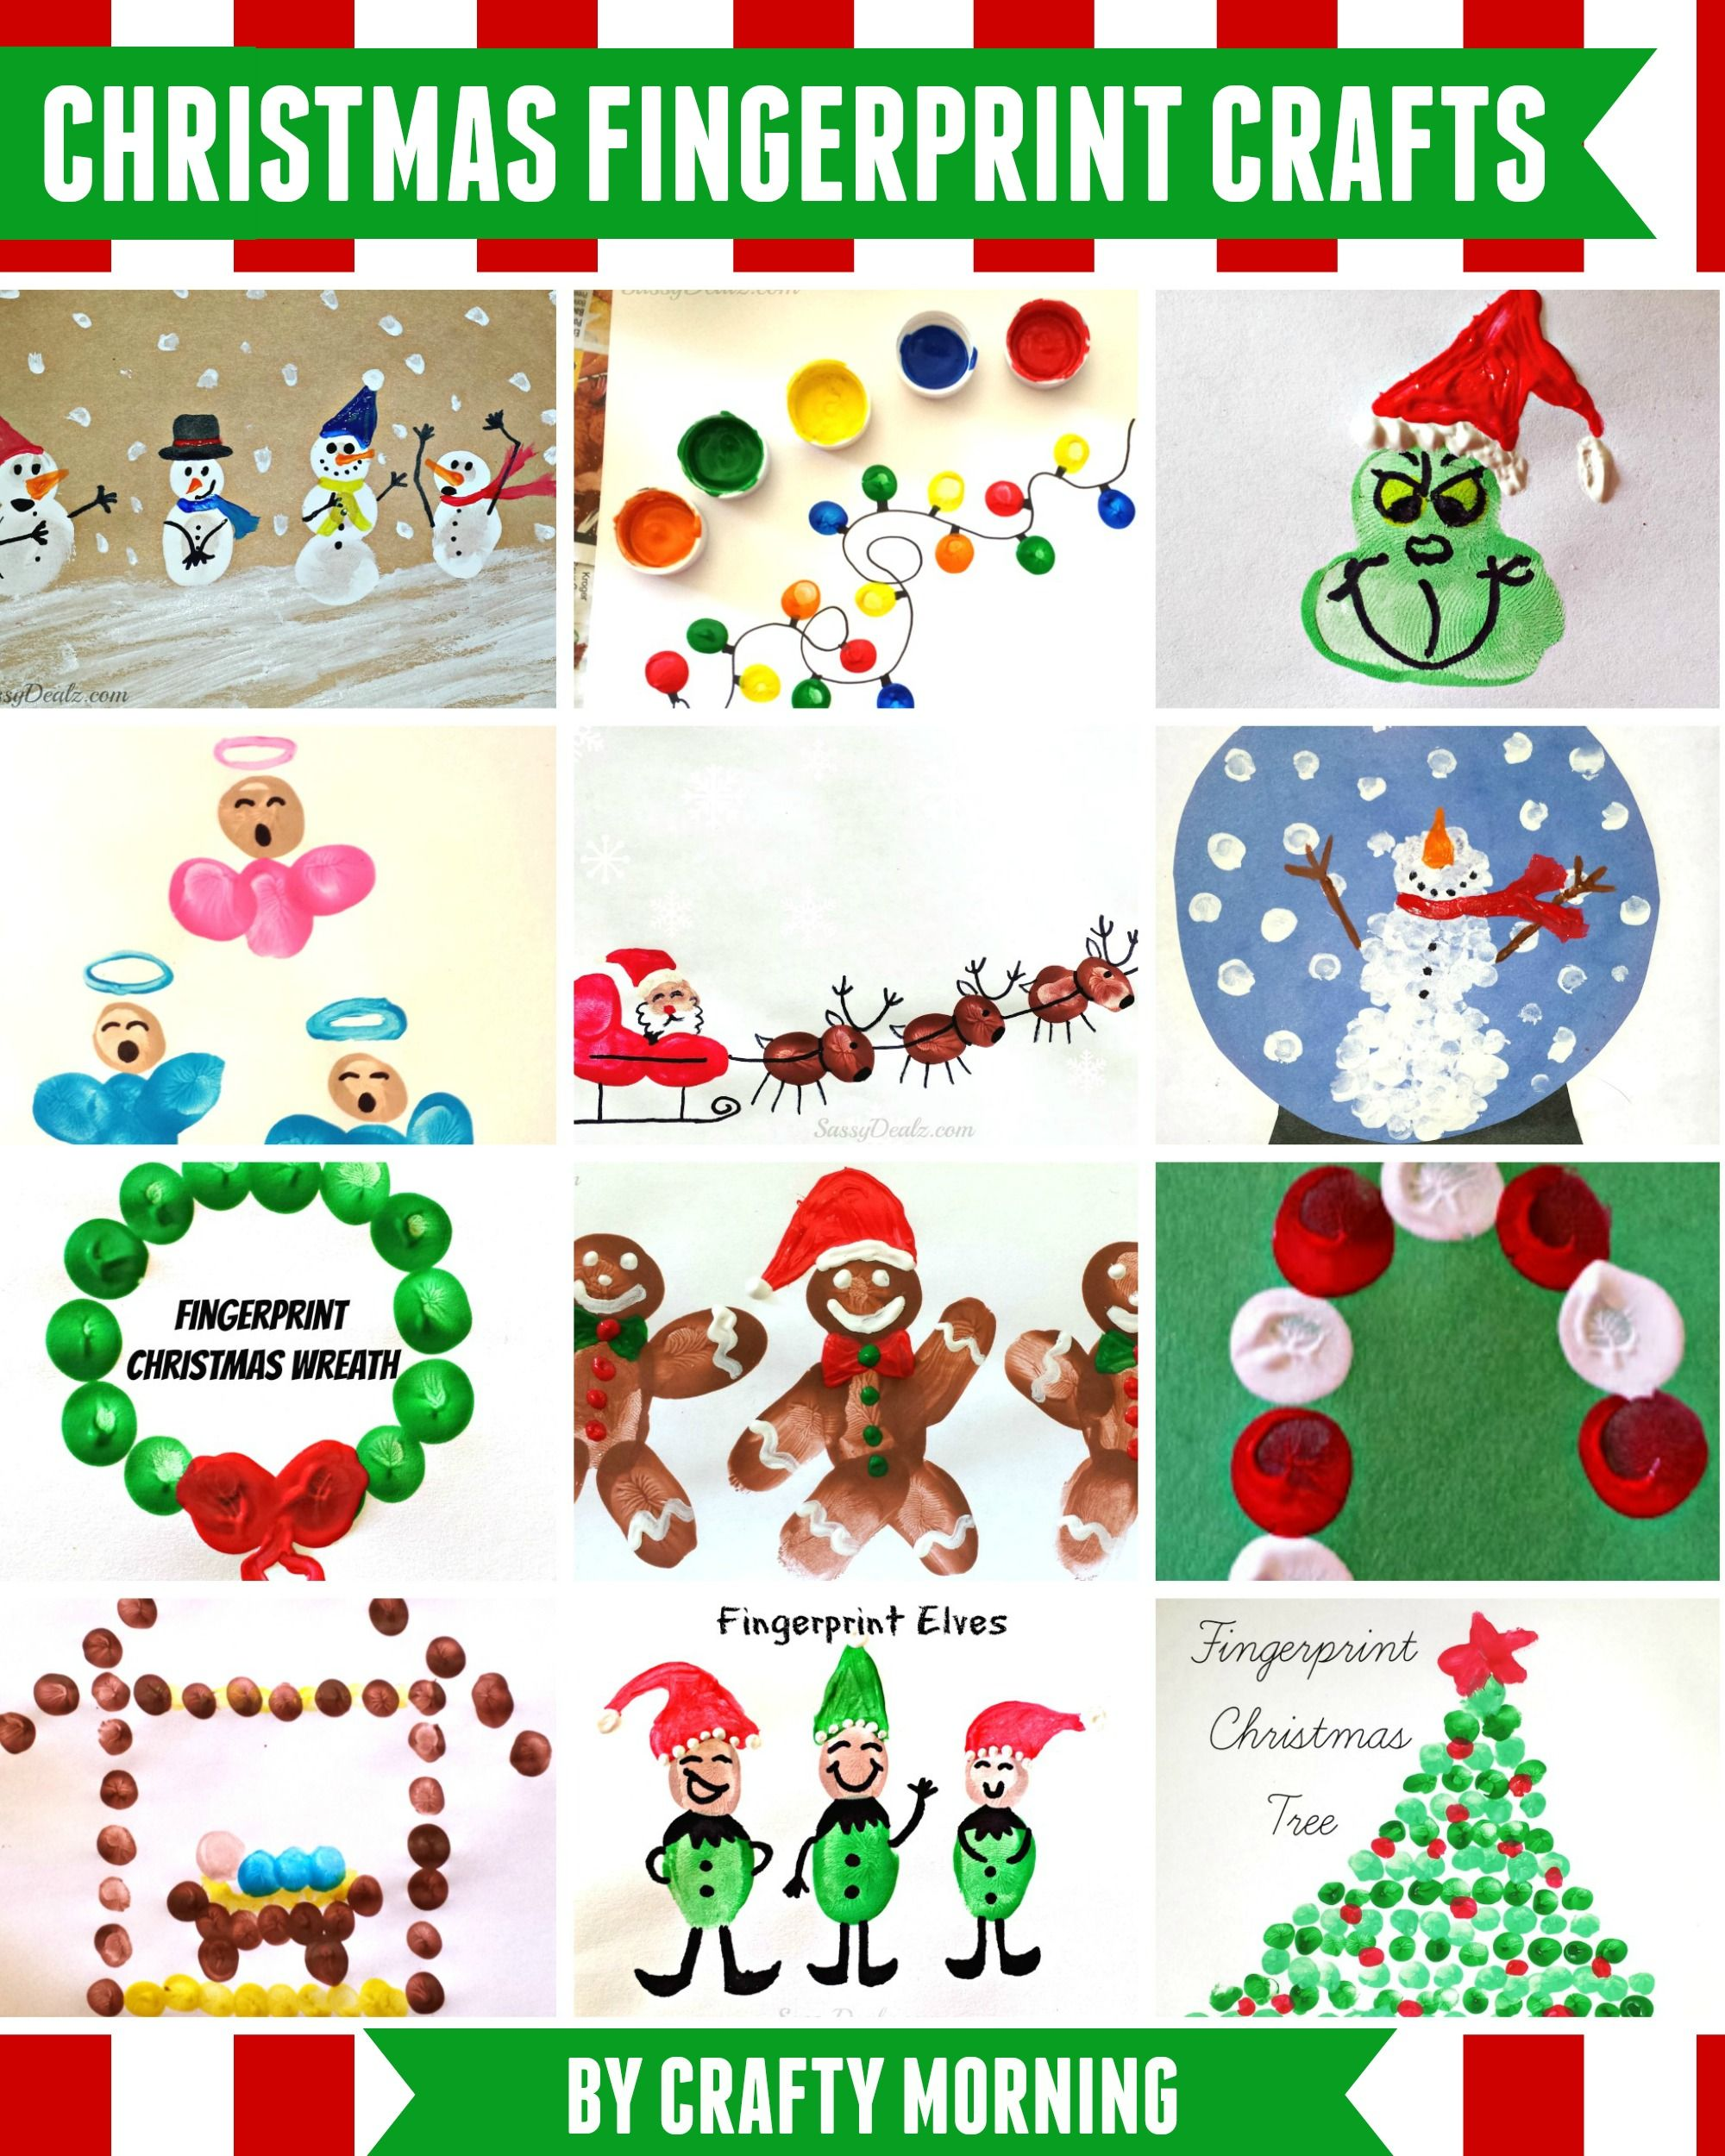 Christmas fingerprint crafts by michelle at craftymorning - Sassydeals com ...